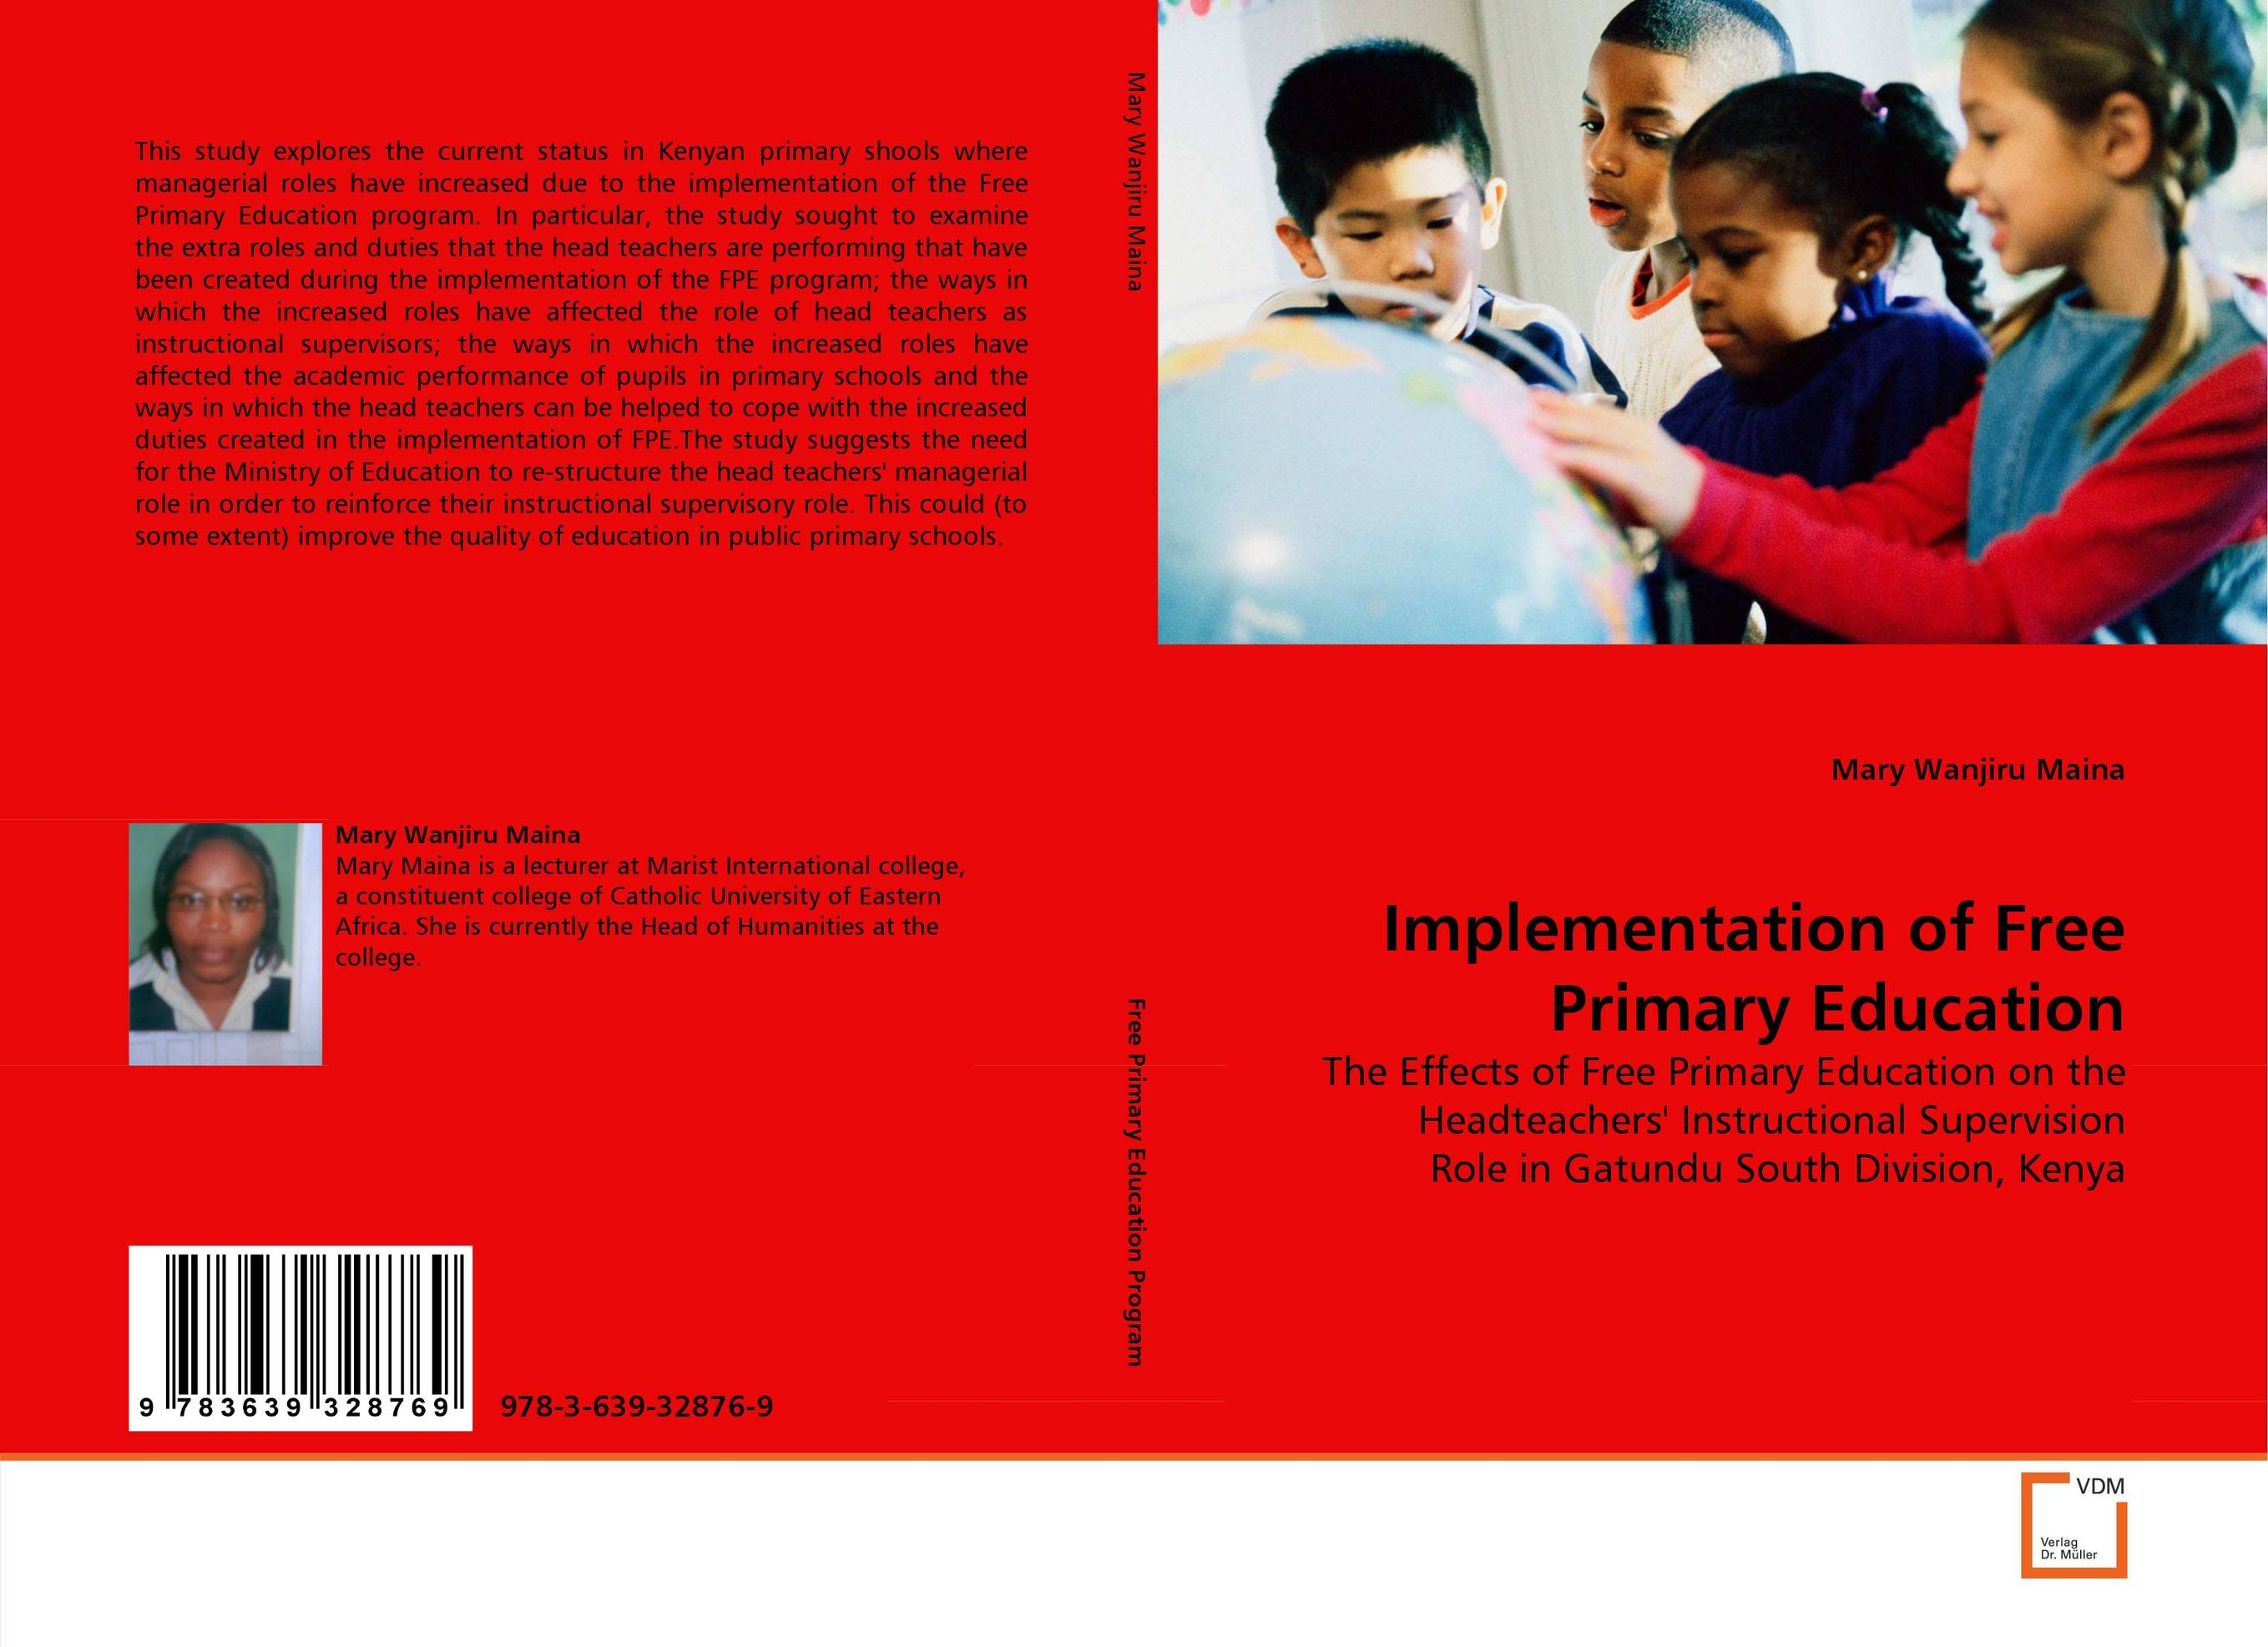 Implementation of Free Primary Education the implementation of environmental education in schools